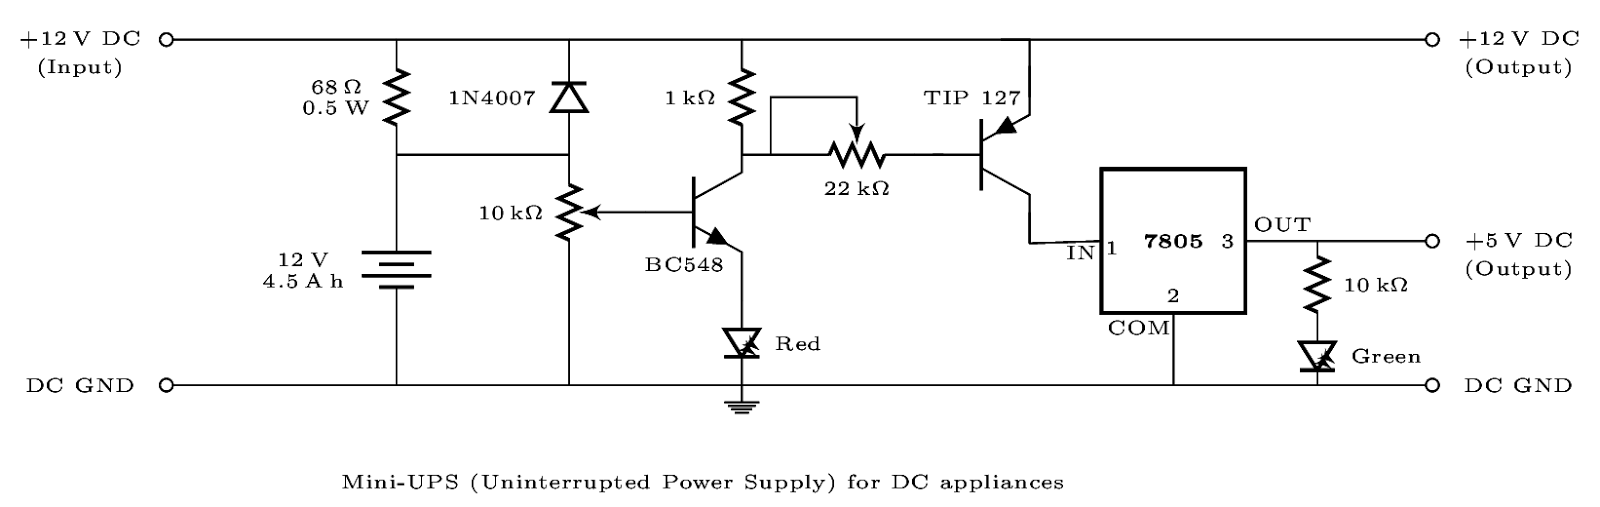 hight resolution of technical musings diy mini ups for charging phones or running wifi the circuit diagram was